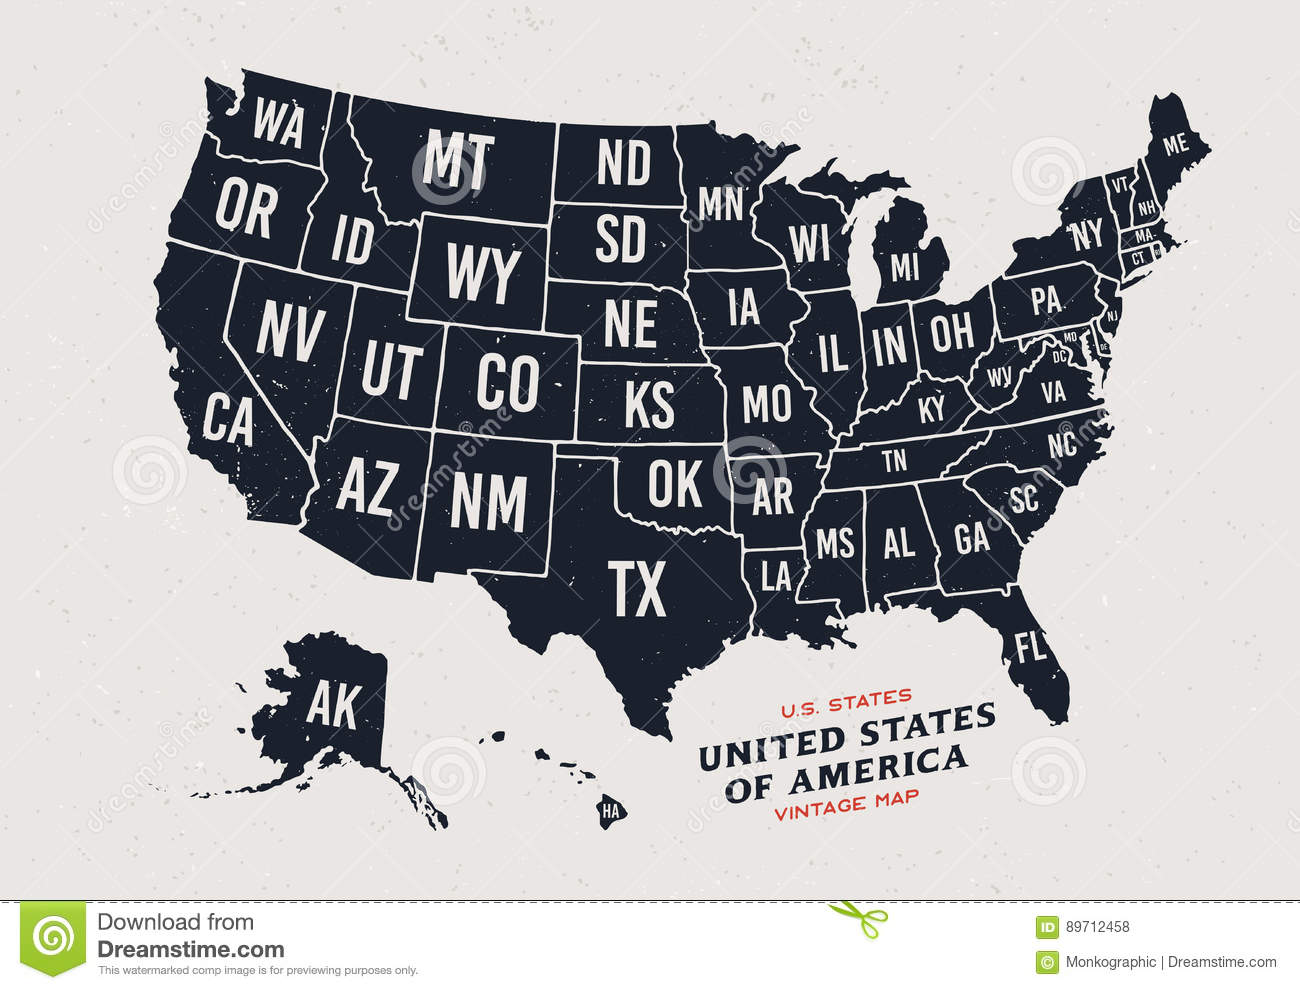 Vintage Map Of United States Of America 50 States. Stock Vector